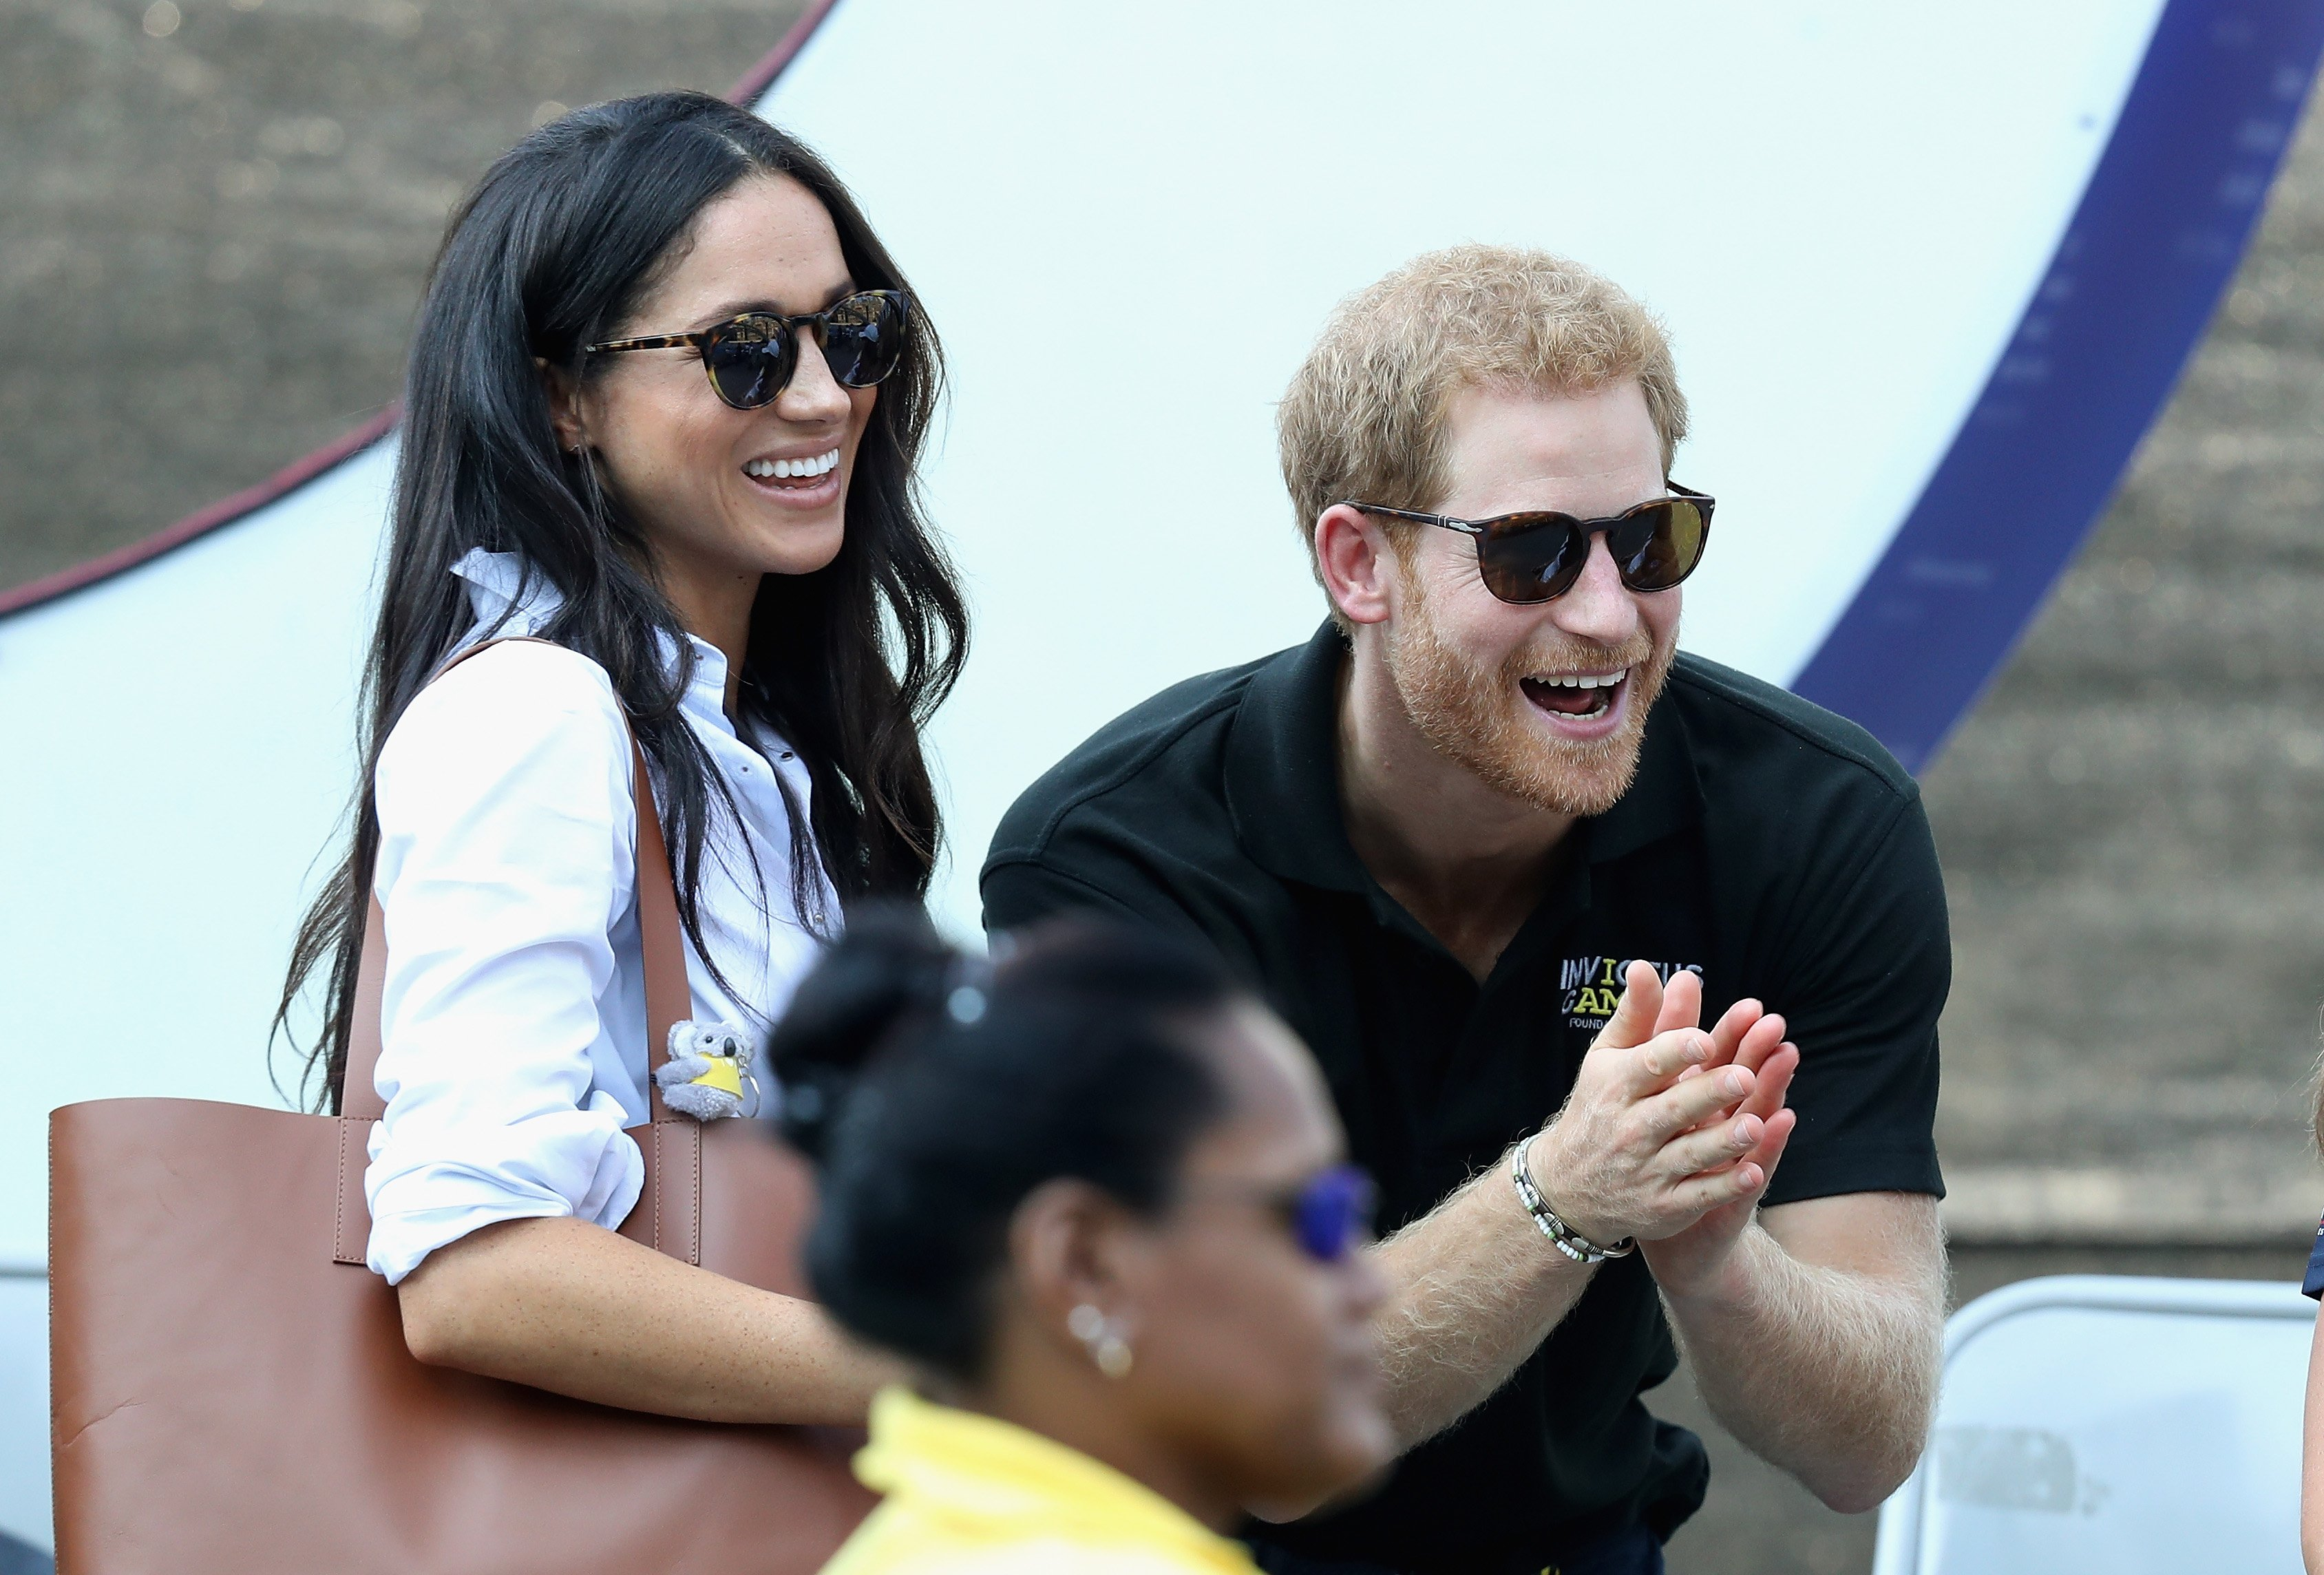 Prince Harry and Meghan Markle attend the Invictus Games in Toronto in 2017 | Photo: Getty Images